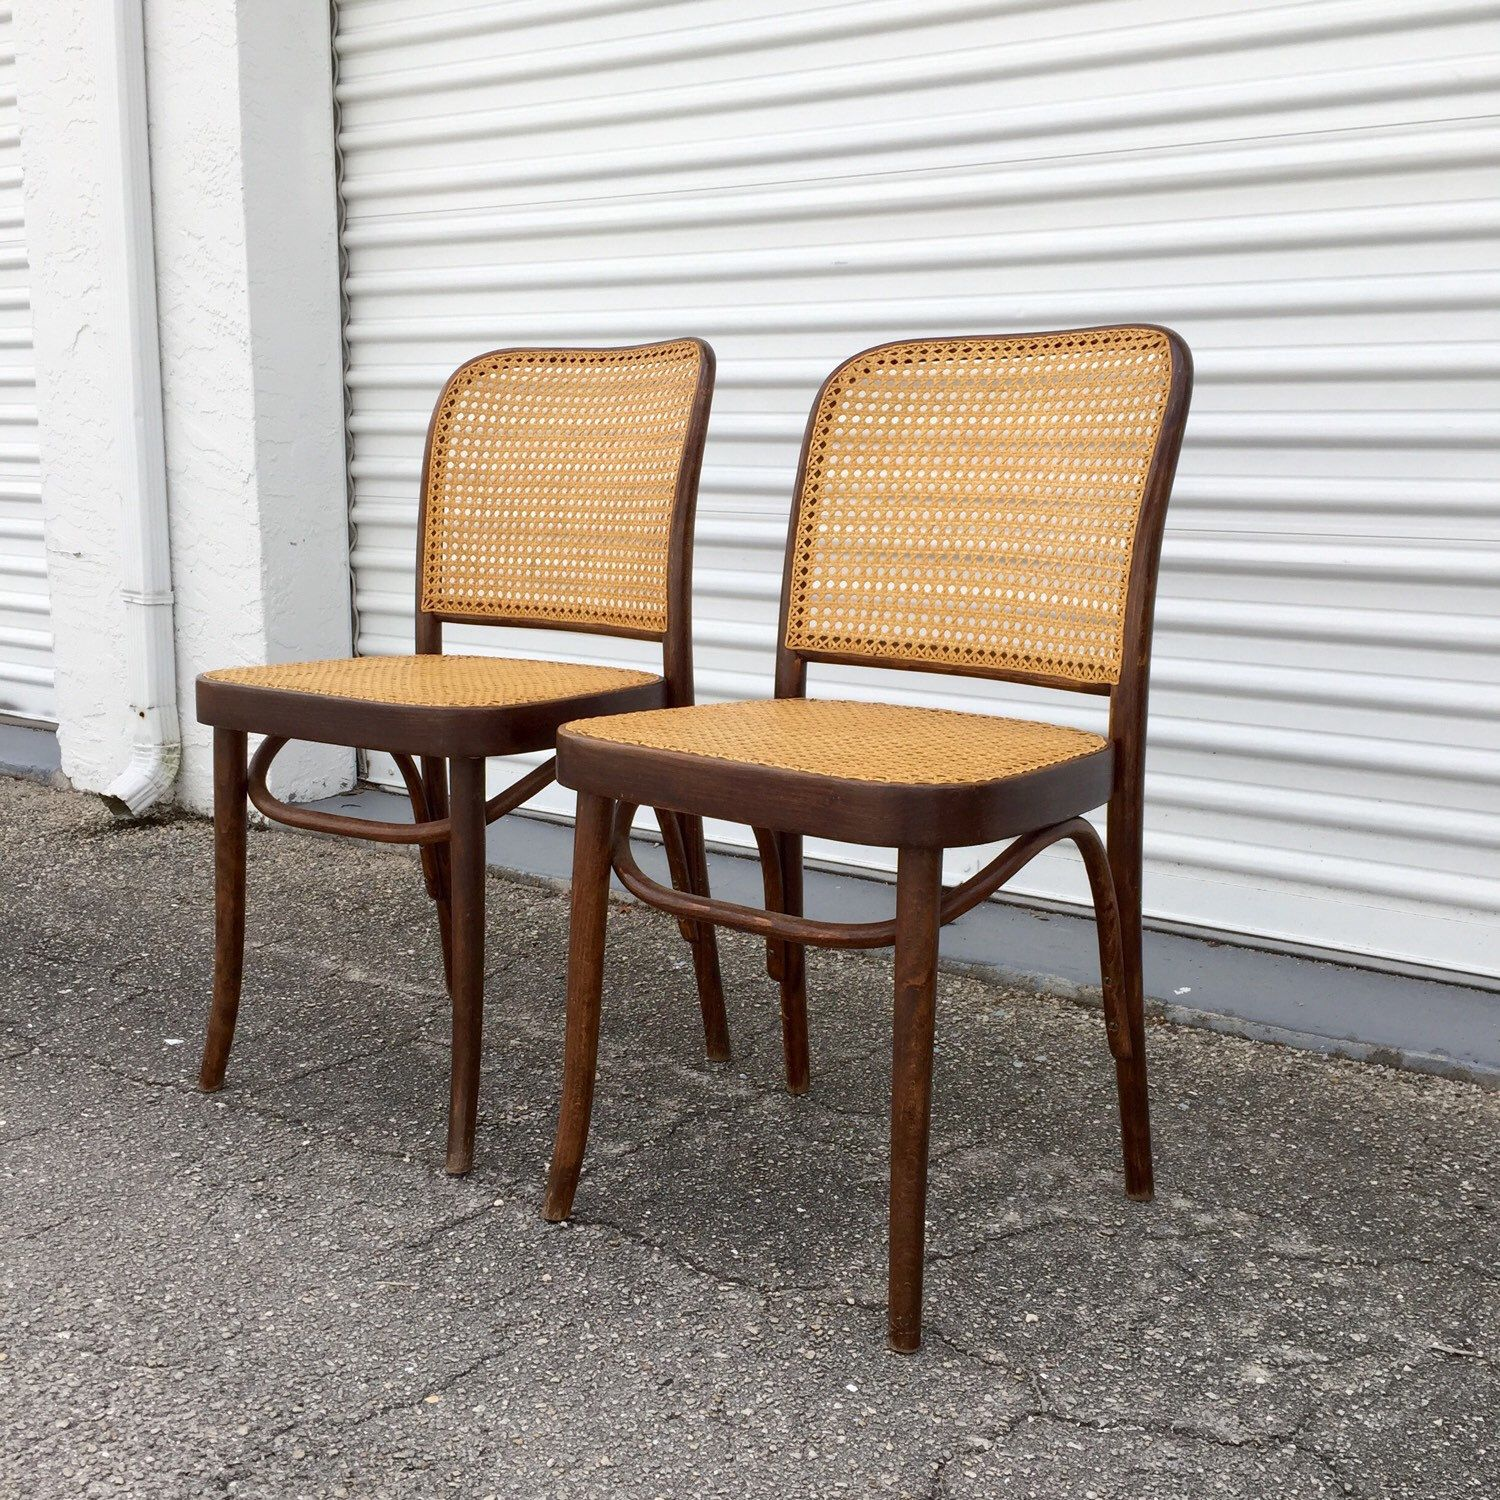 Vintage Bentwood Chairs - Pair of vintage josef hoffmann prague thonet bentwood and cane chairs made in poland